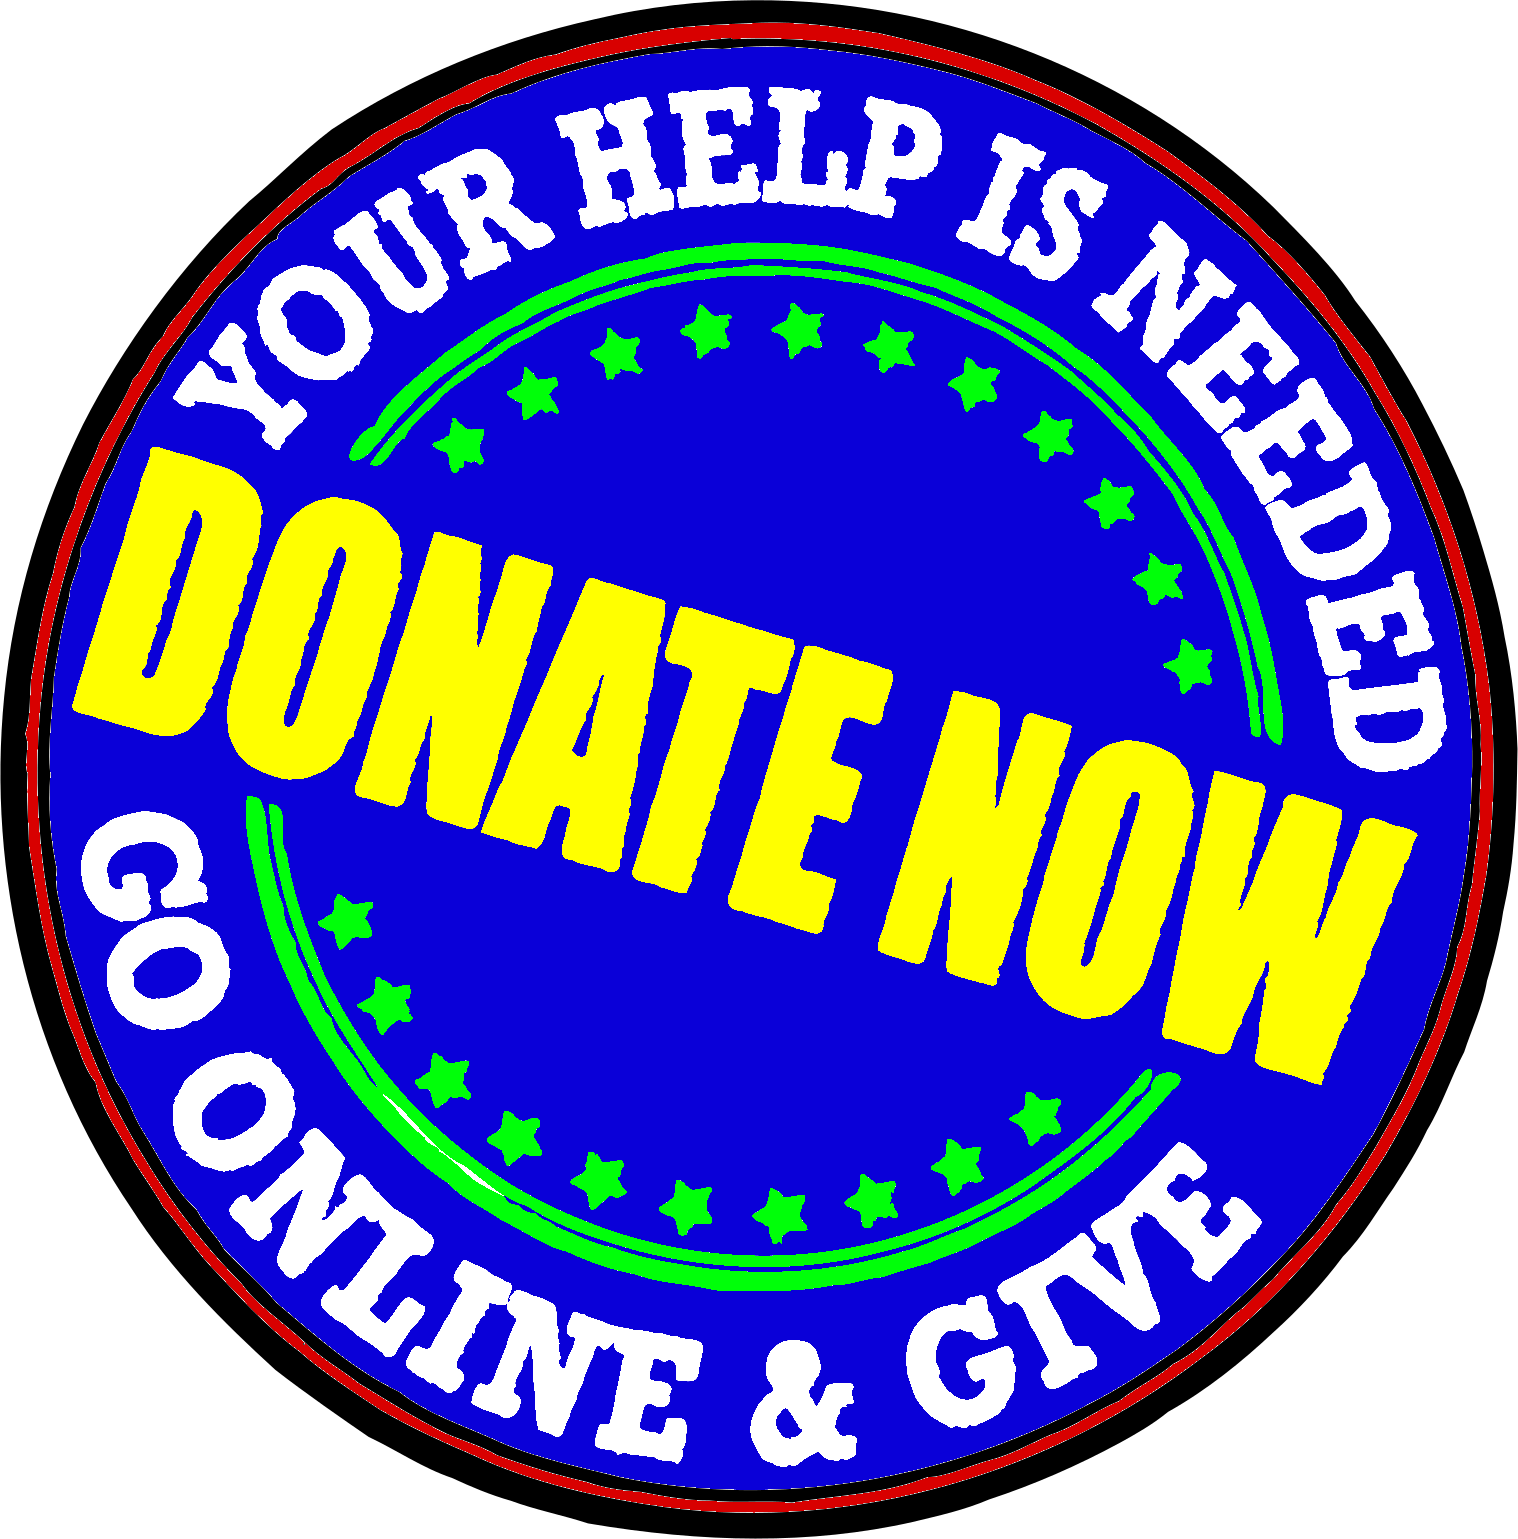 Click Here to make offerings or donations